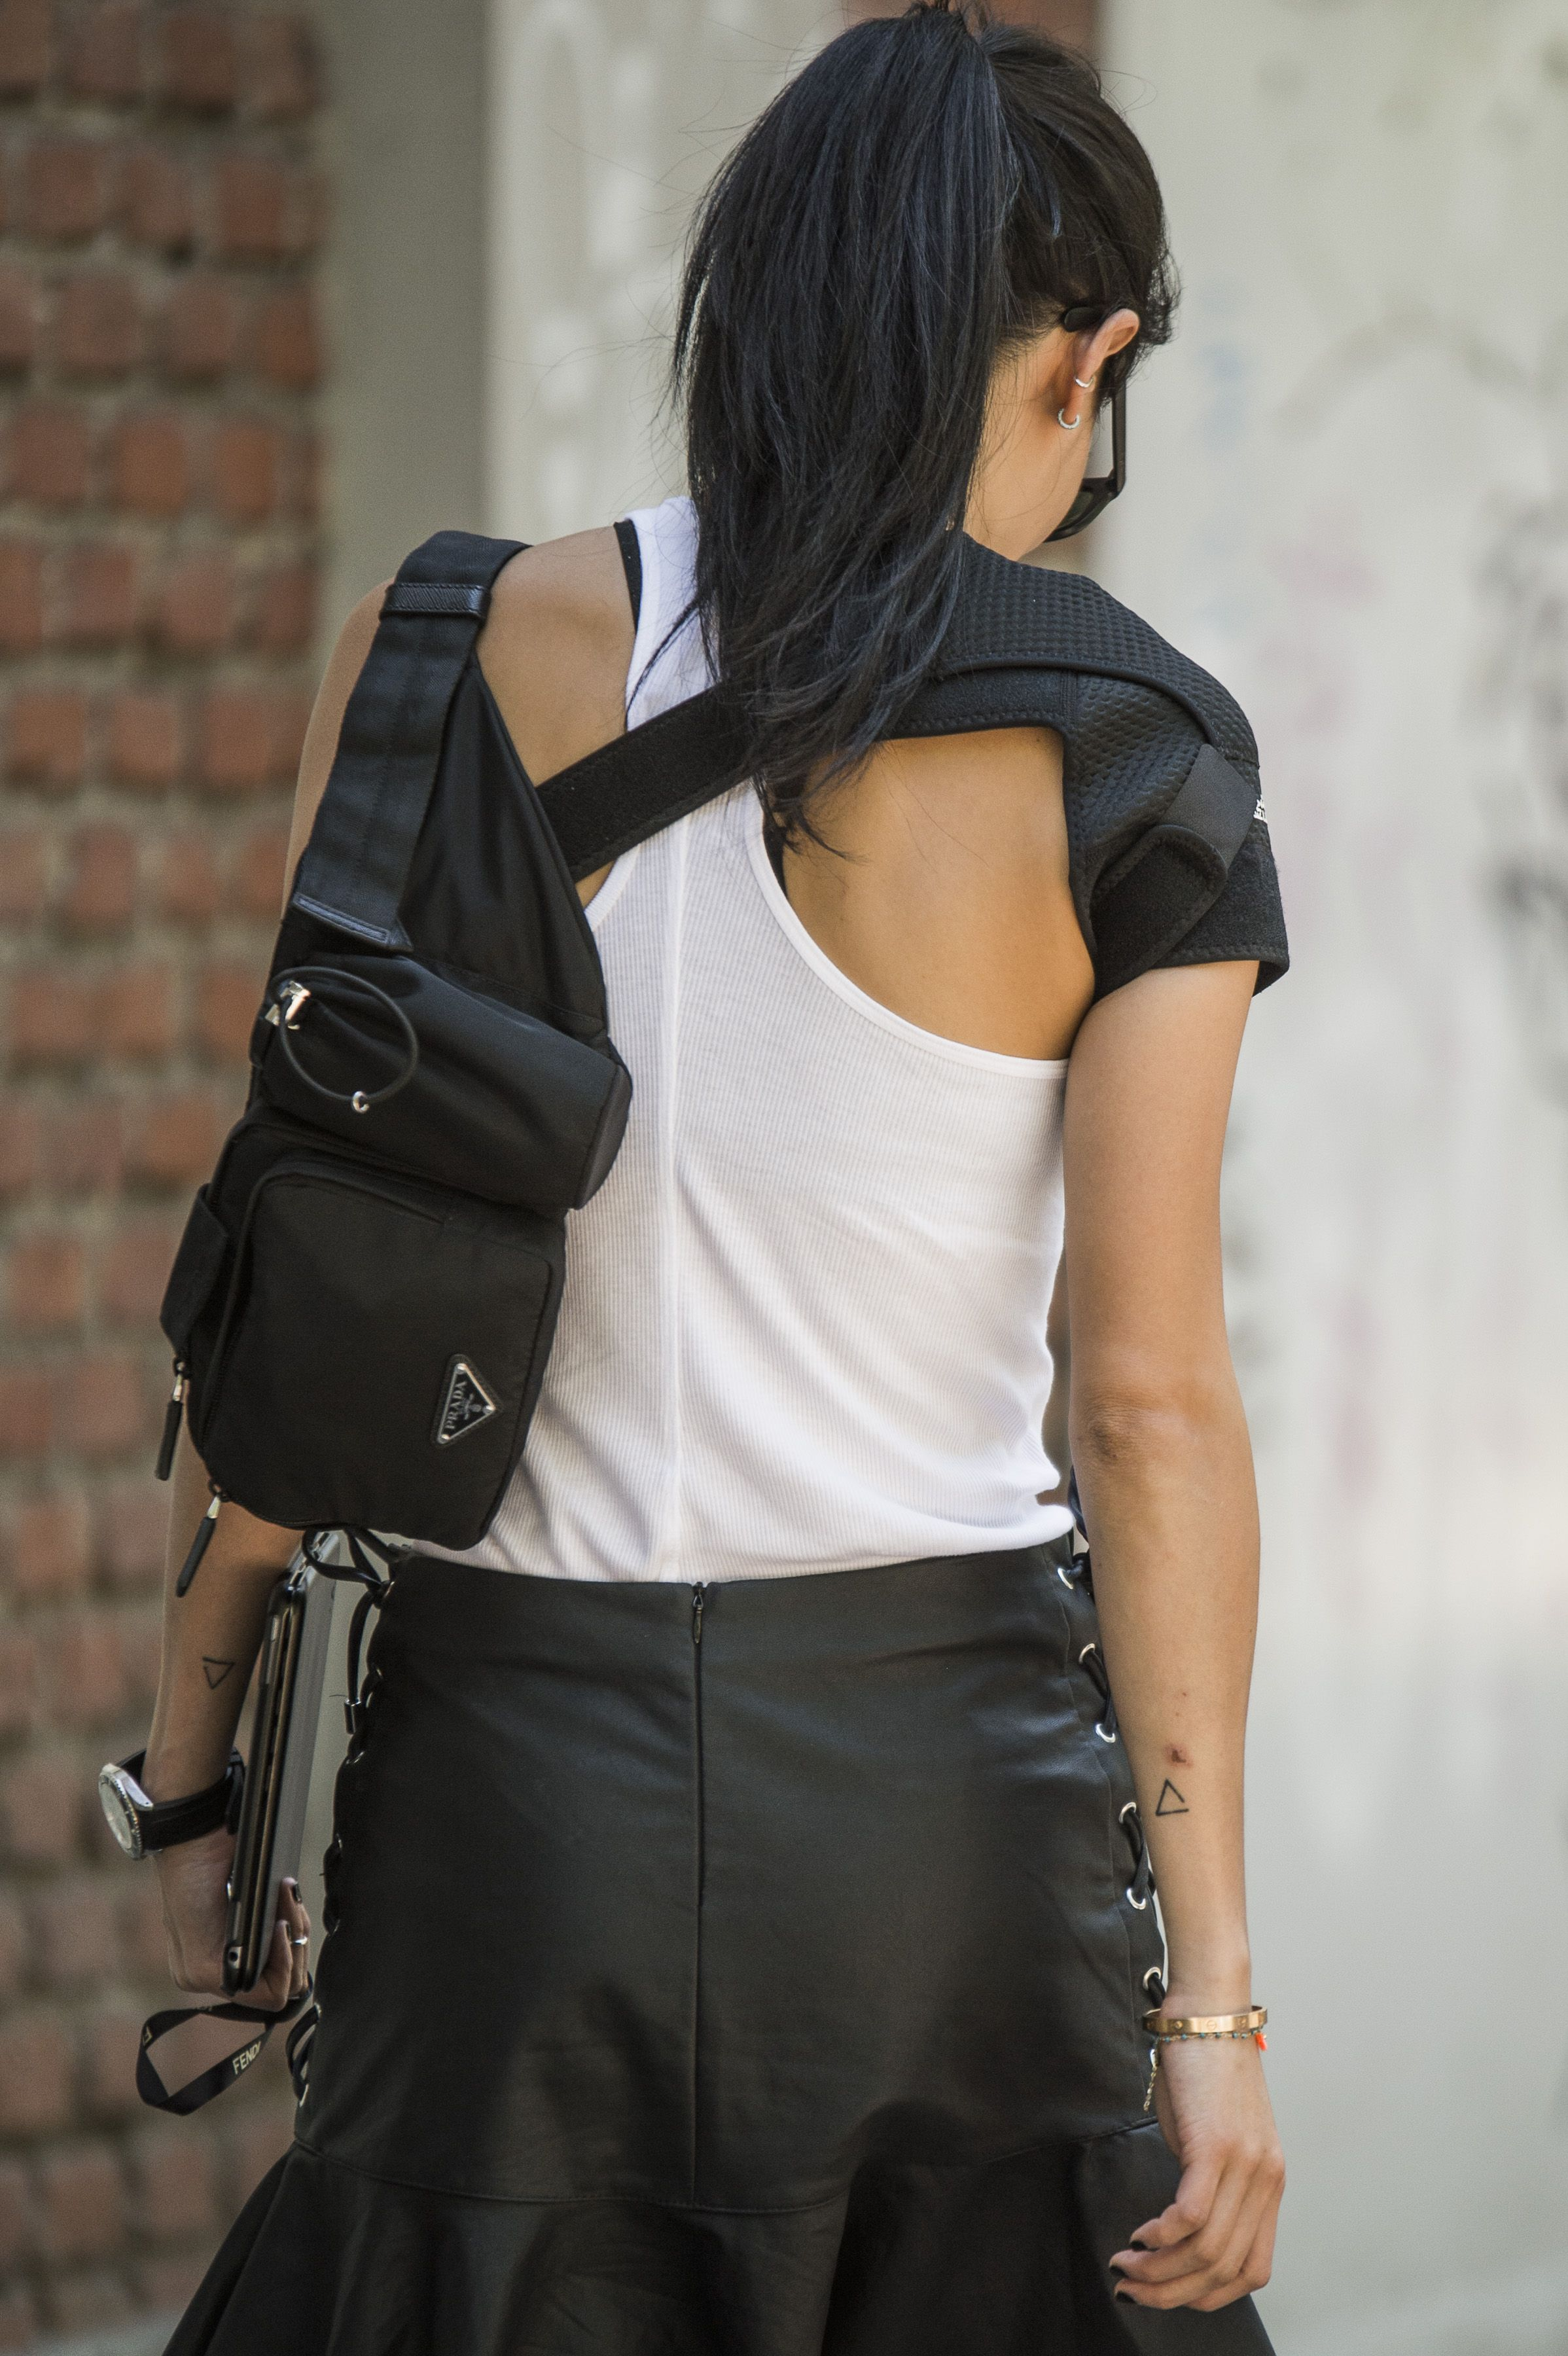 cd612285b0 Fanny Packs Are Summer's Hottest Accessories Trend